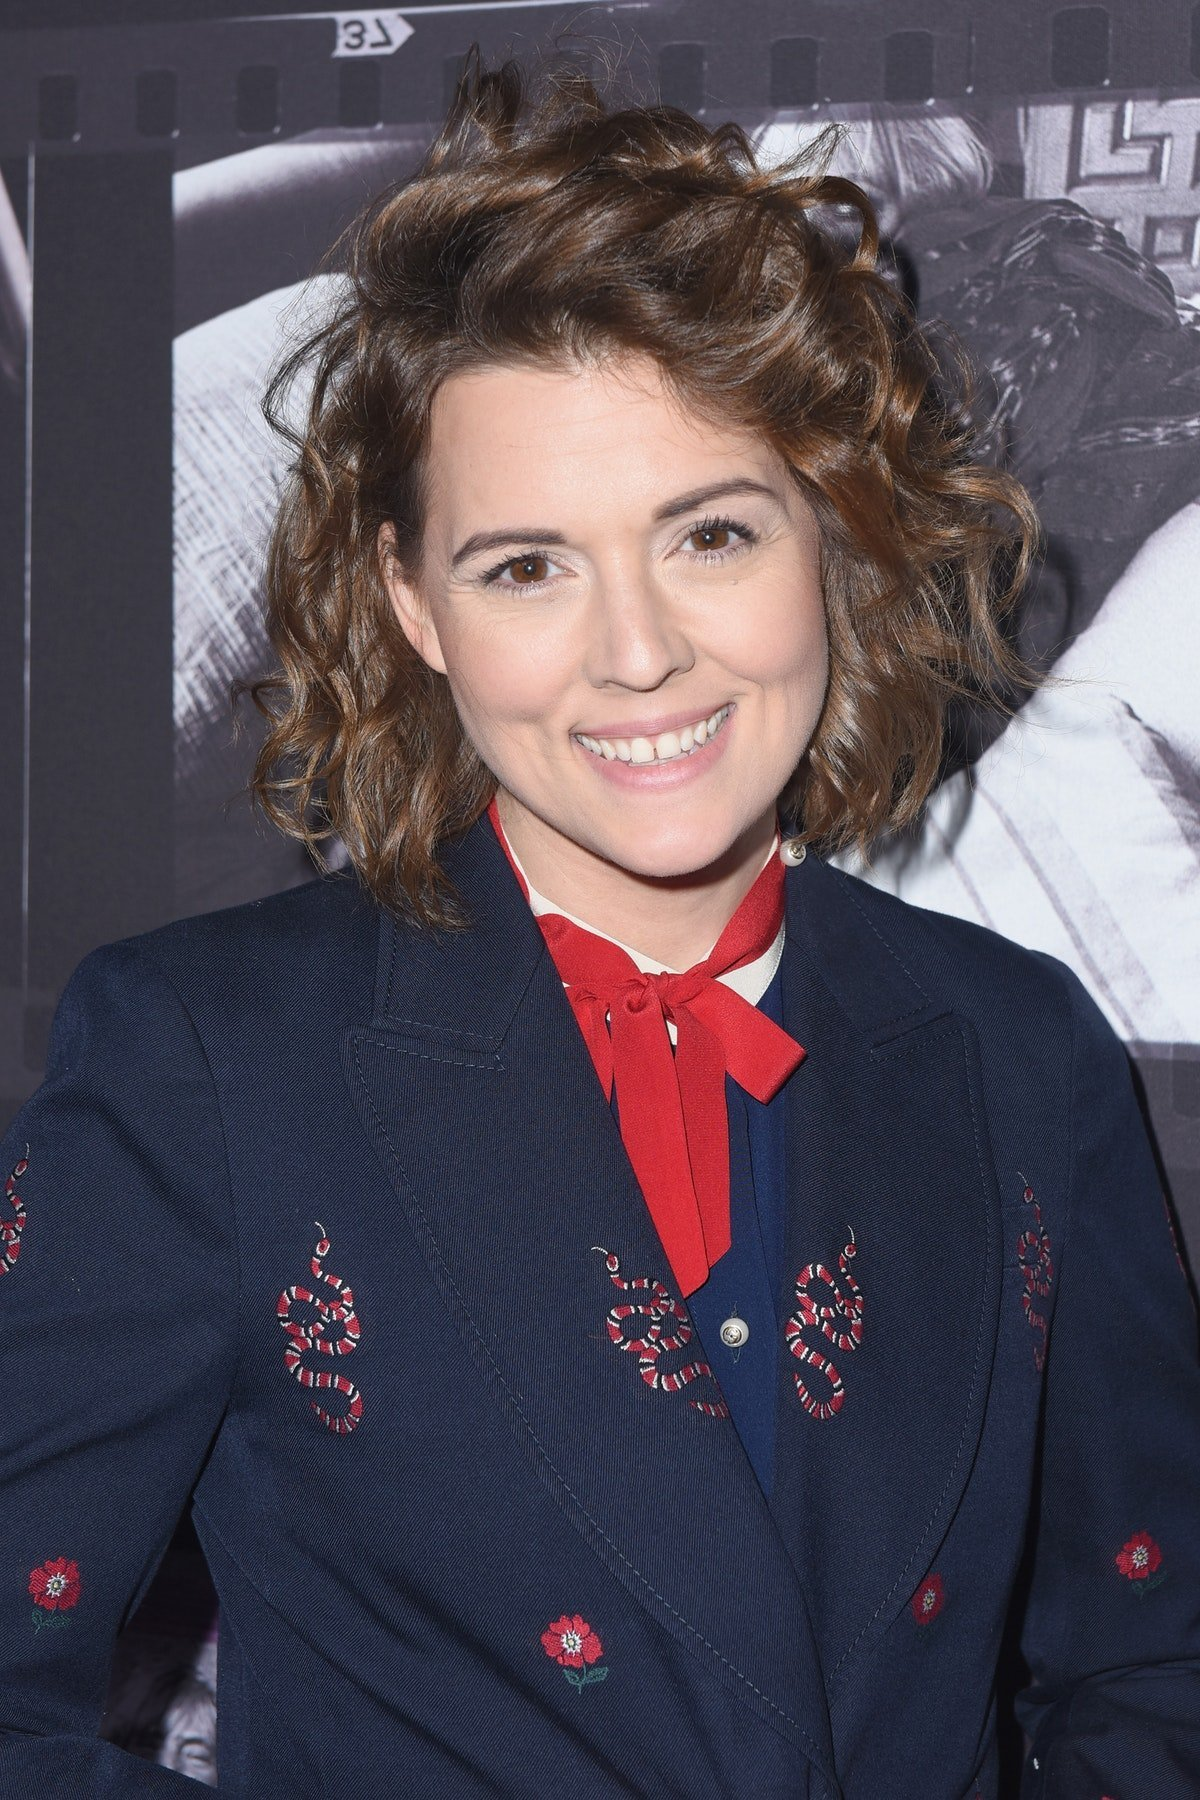 Who Is Brandi Carlile? This Incredible Singer-Songwriter Is So Relatable